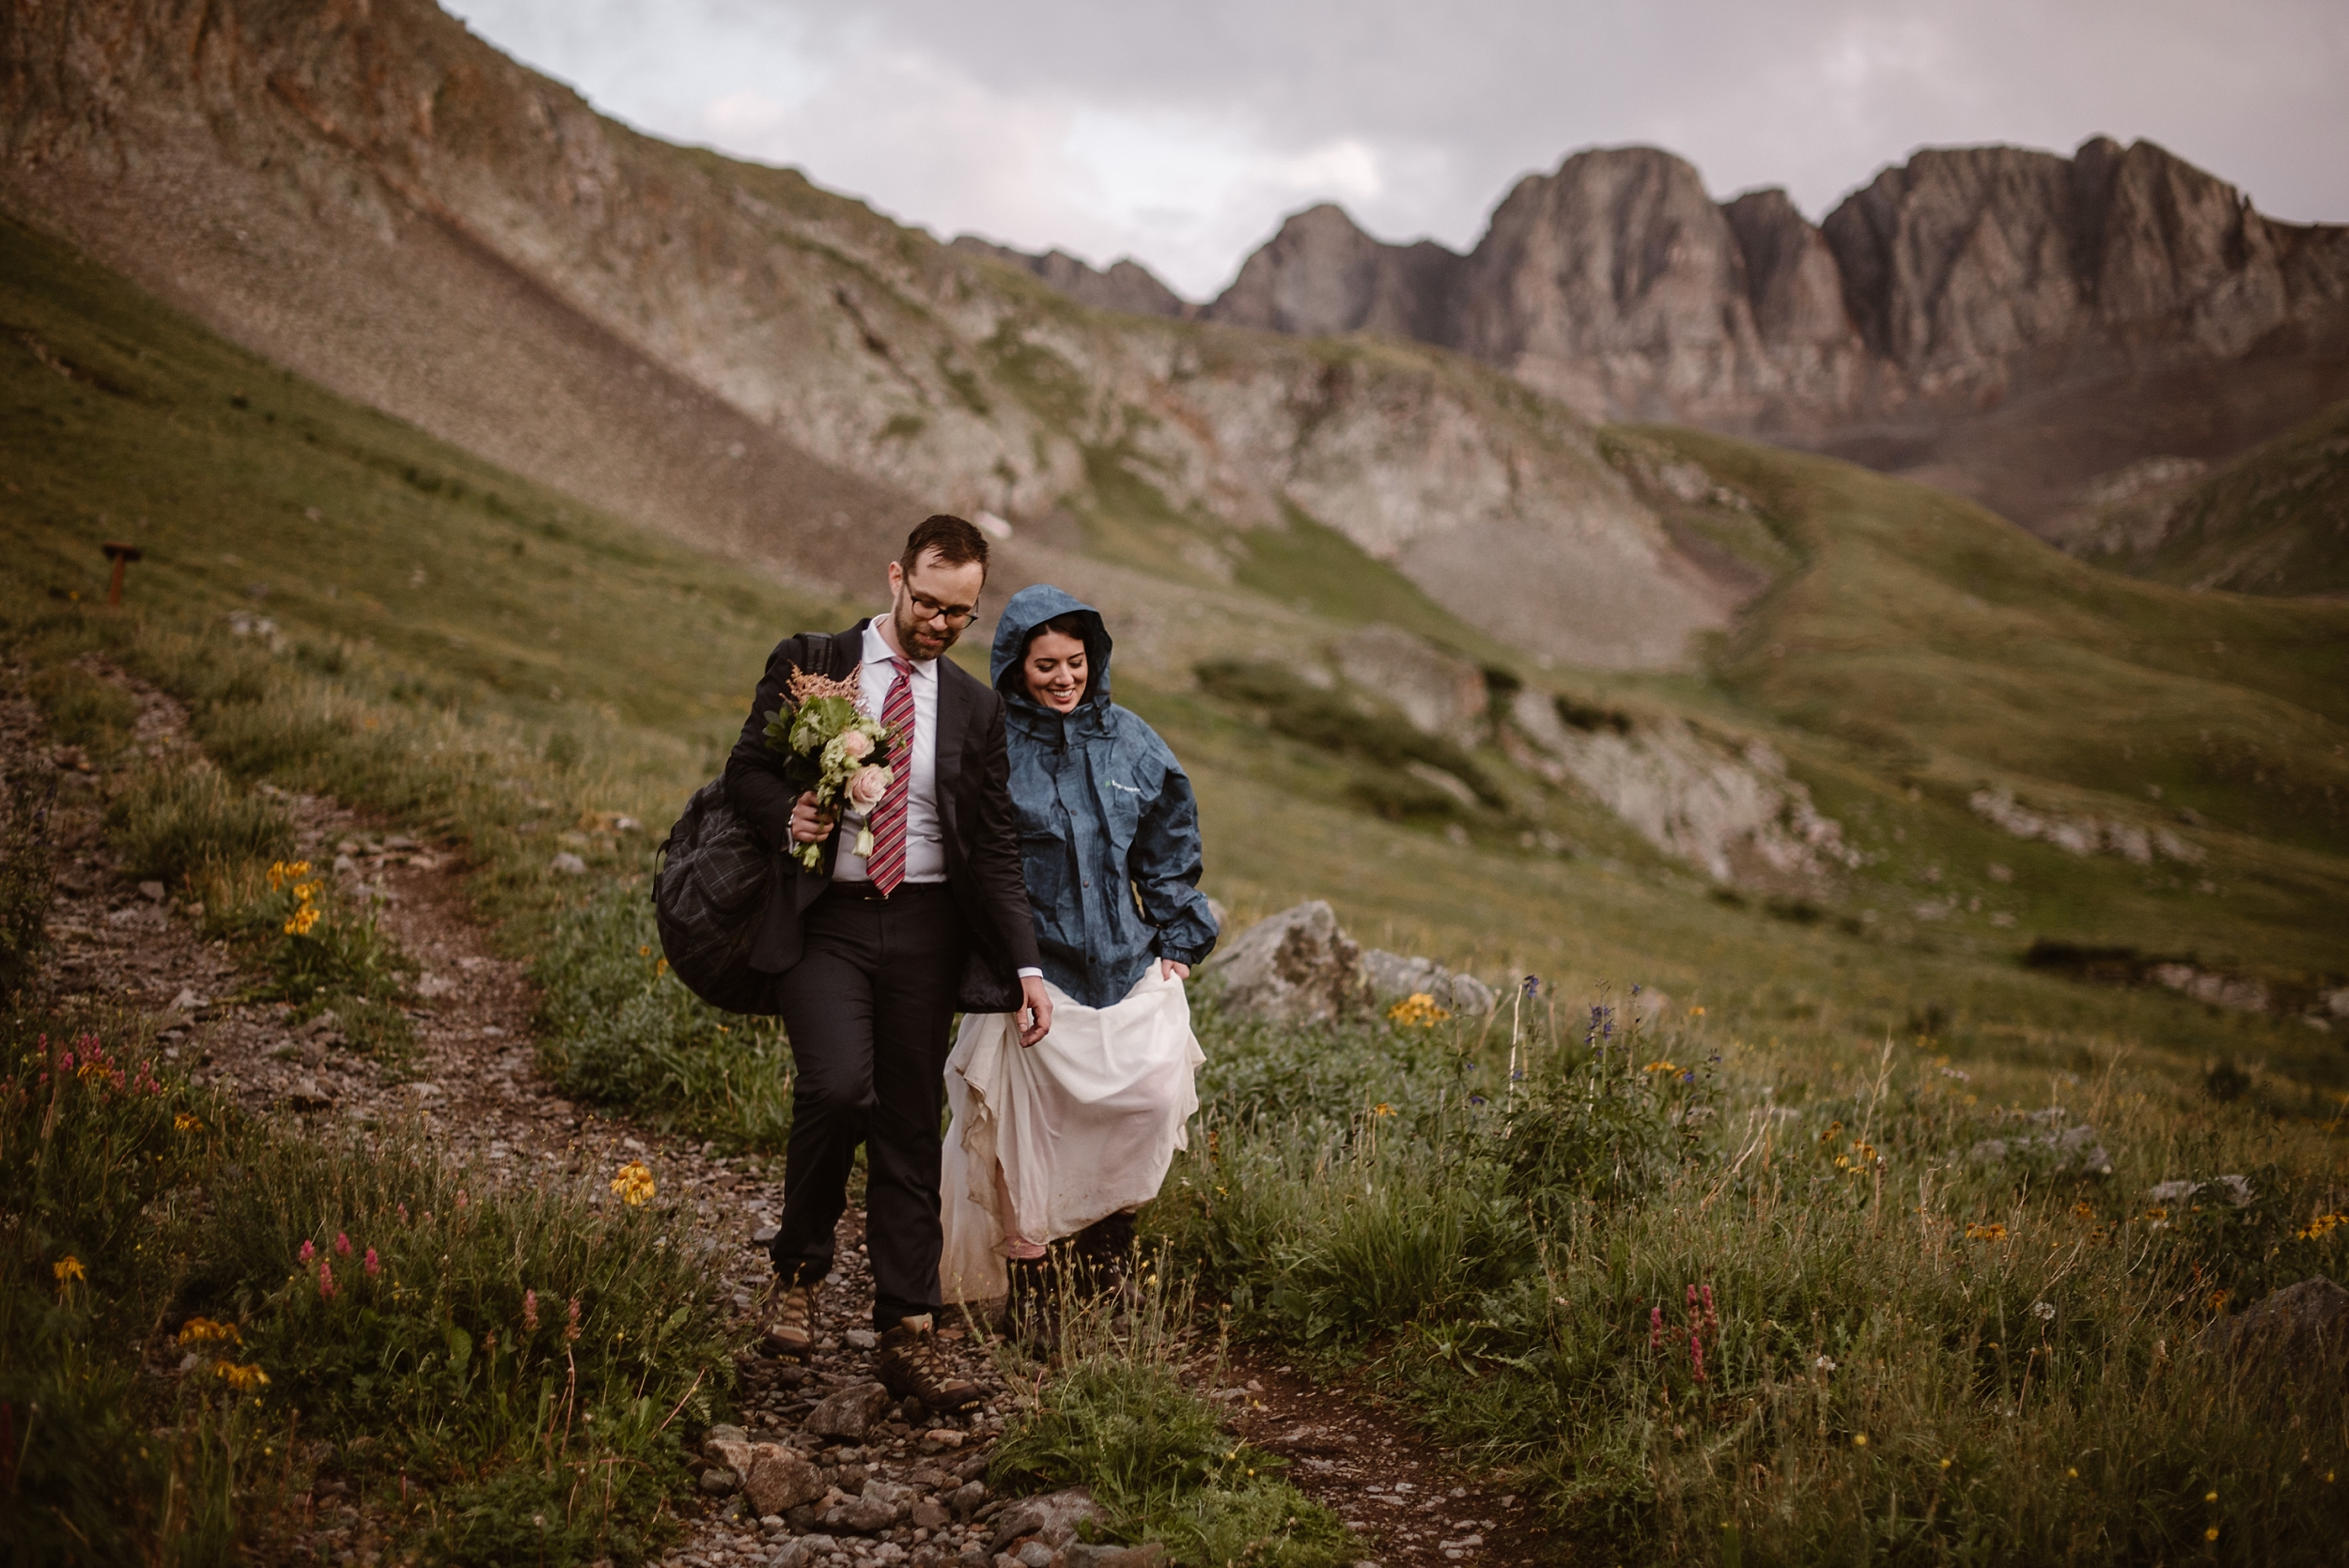 Katie and Logan, the bride and groom, head back down the mountain — a little muddier and dirtier than they started the day, but with big smiles on their faces. Katie's wearing a blue windbreaker and Logan walks beside her holding a bouquet of flowers and a hiking backpack.